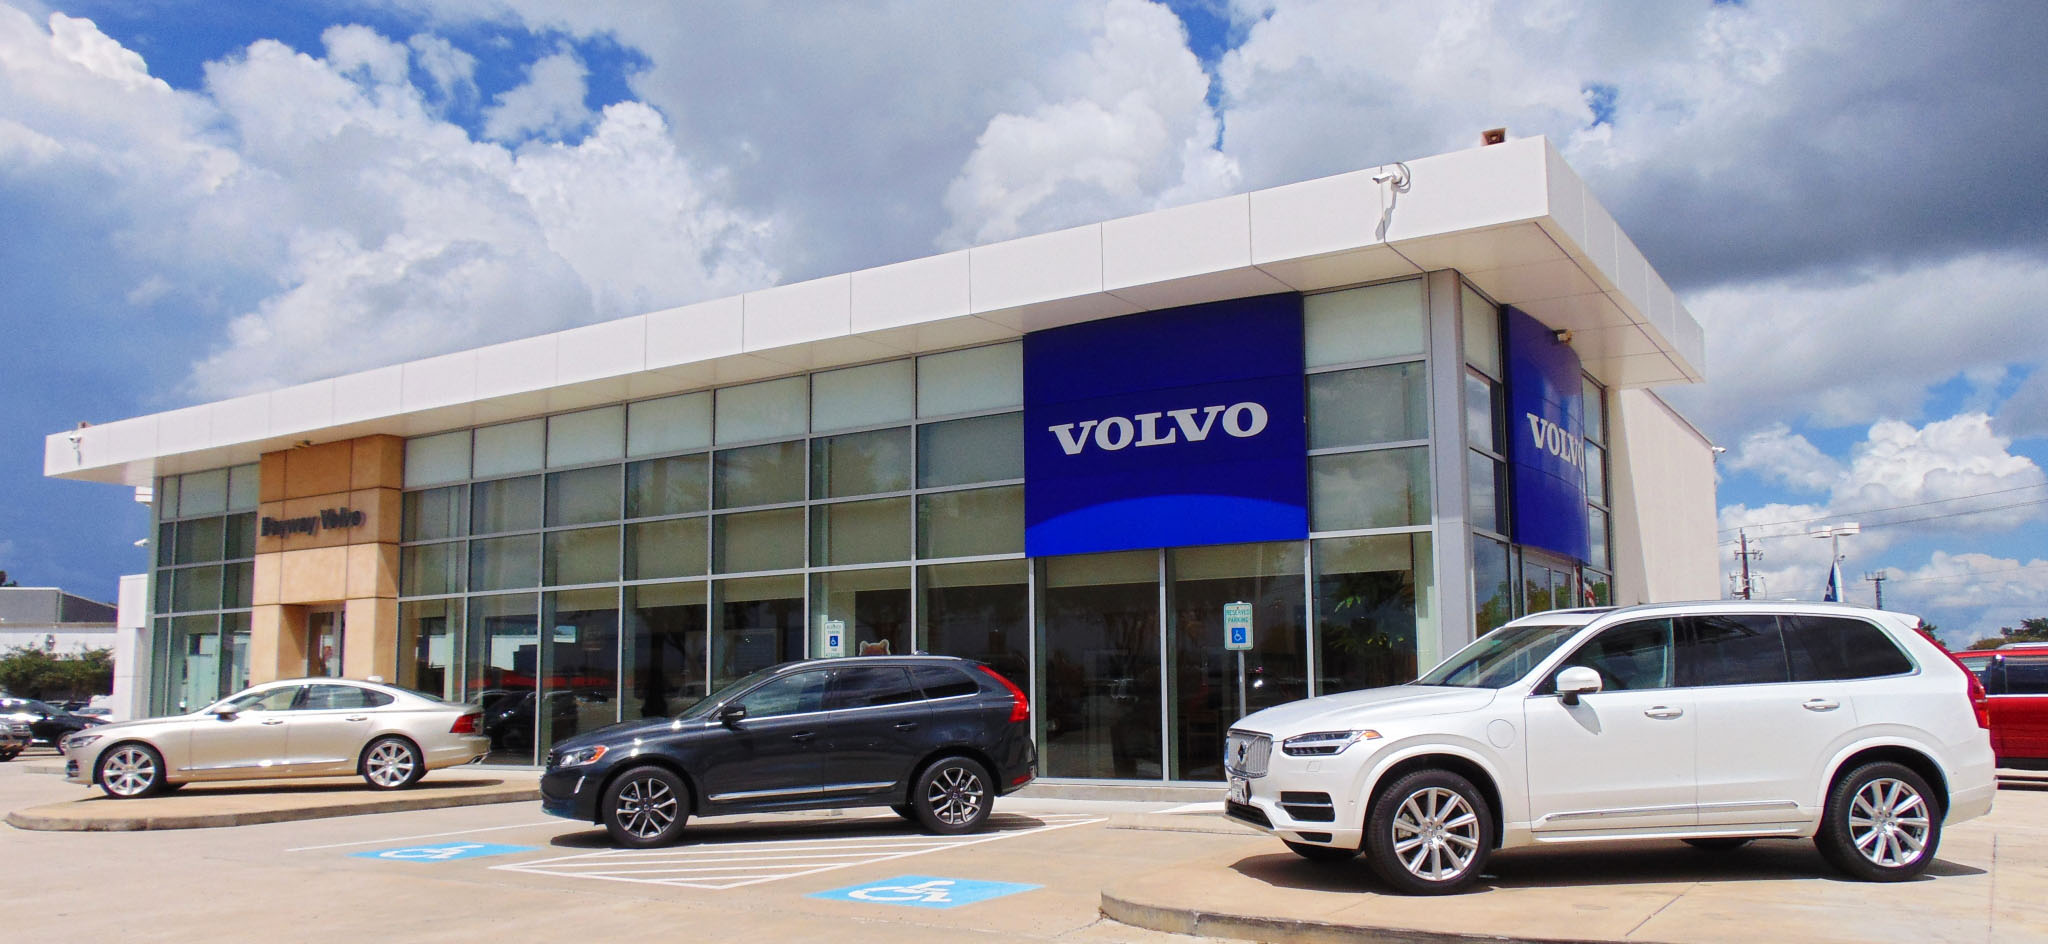 Bayway Volvo Cars